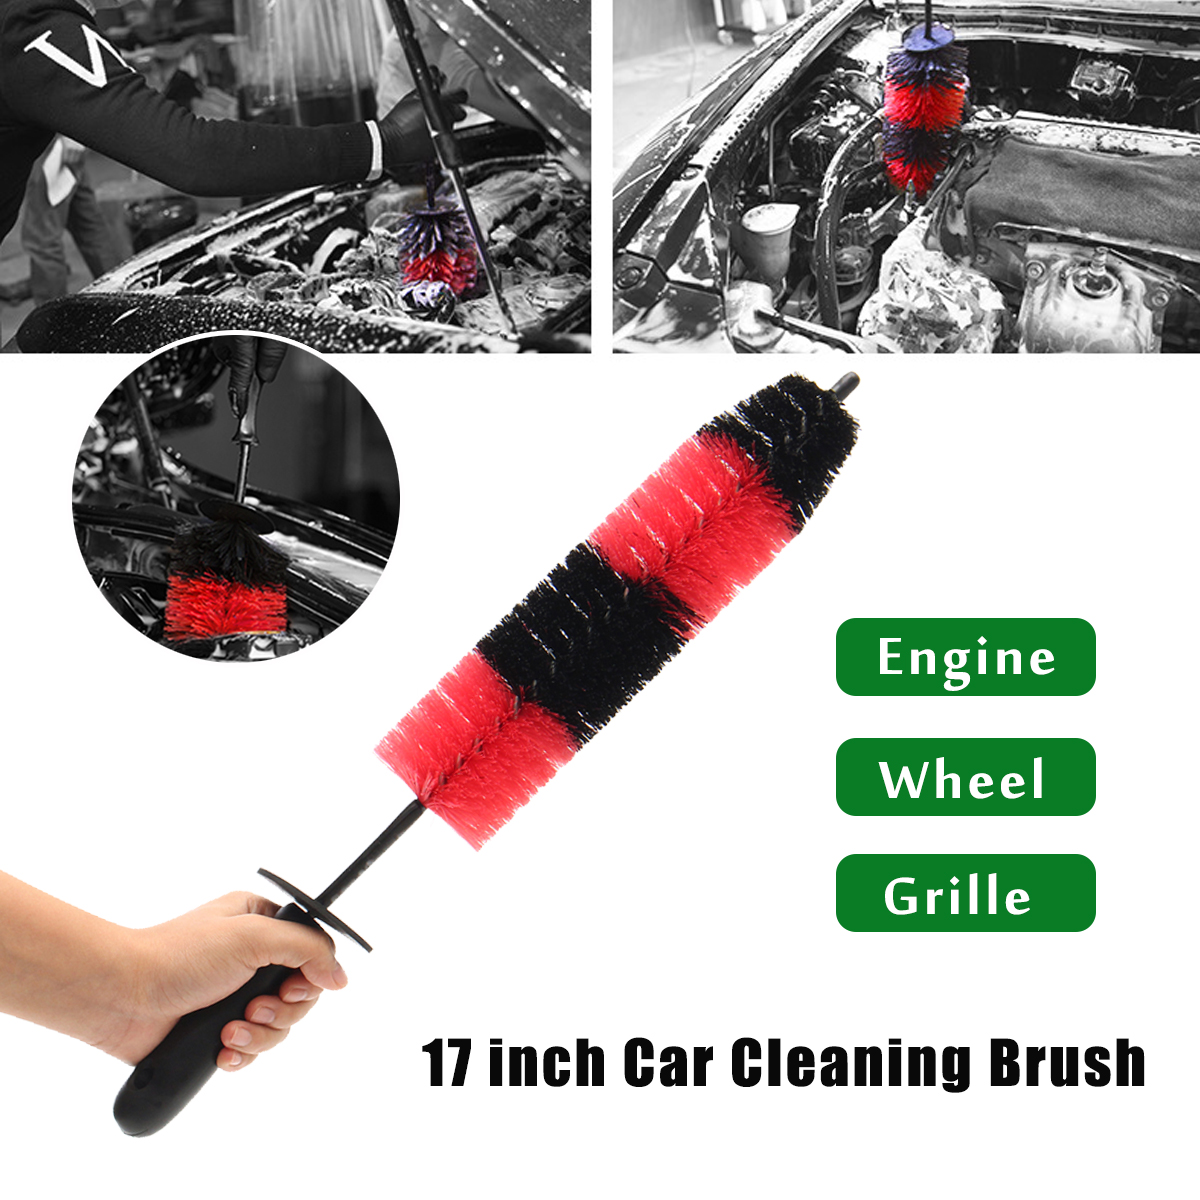 430mm Long Car Grille Wheel Engine Brush Wash Microfiber Cleaning Detailing Automotive Cleaning Tool цена